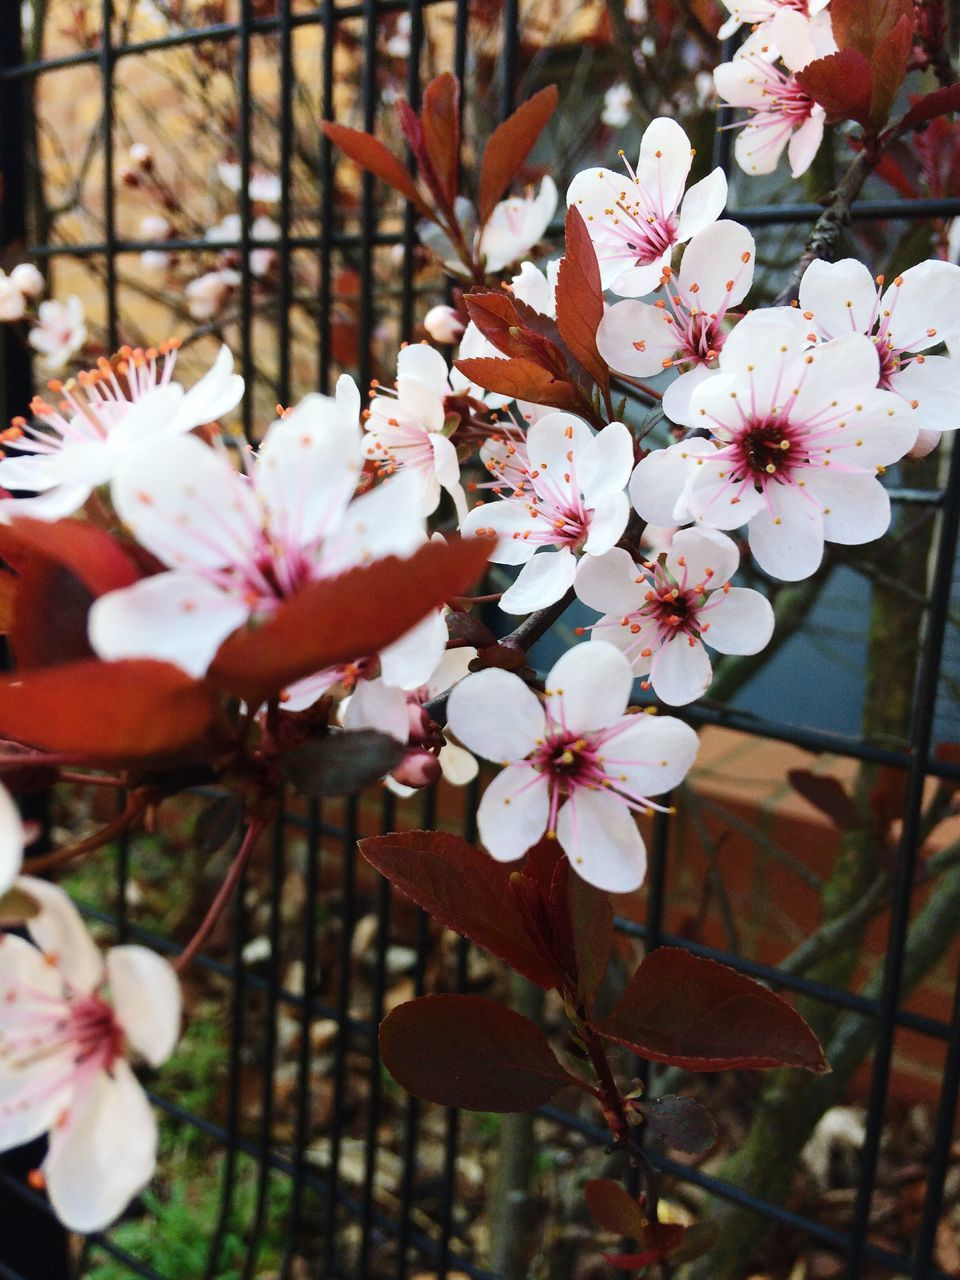 flower, beauty in nature, growth, fragility, petal, blossom, nature, springtime, white color, flower head, freshness, tree, no people, botany, branch, stamen, apple blossom, blooming, twig, day, close-up, outdoors